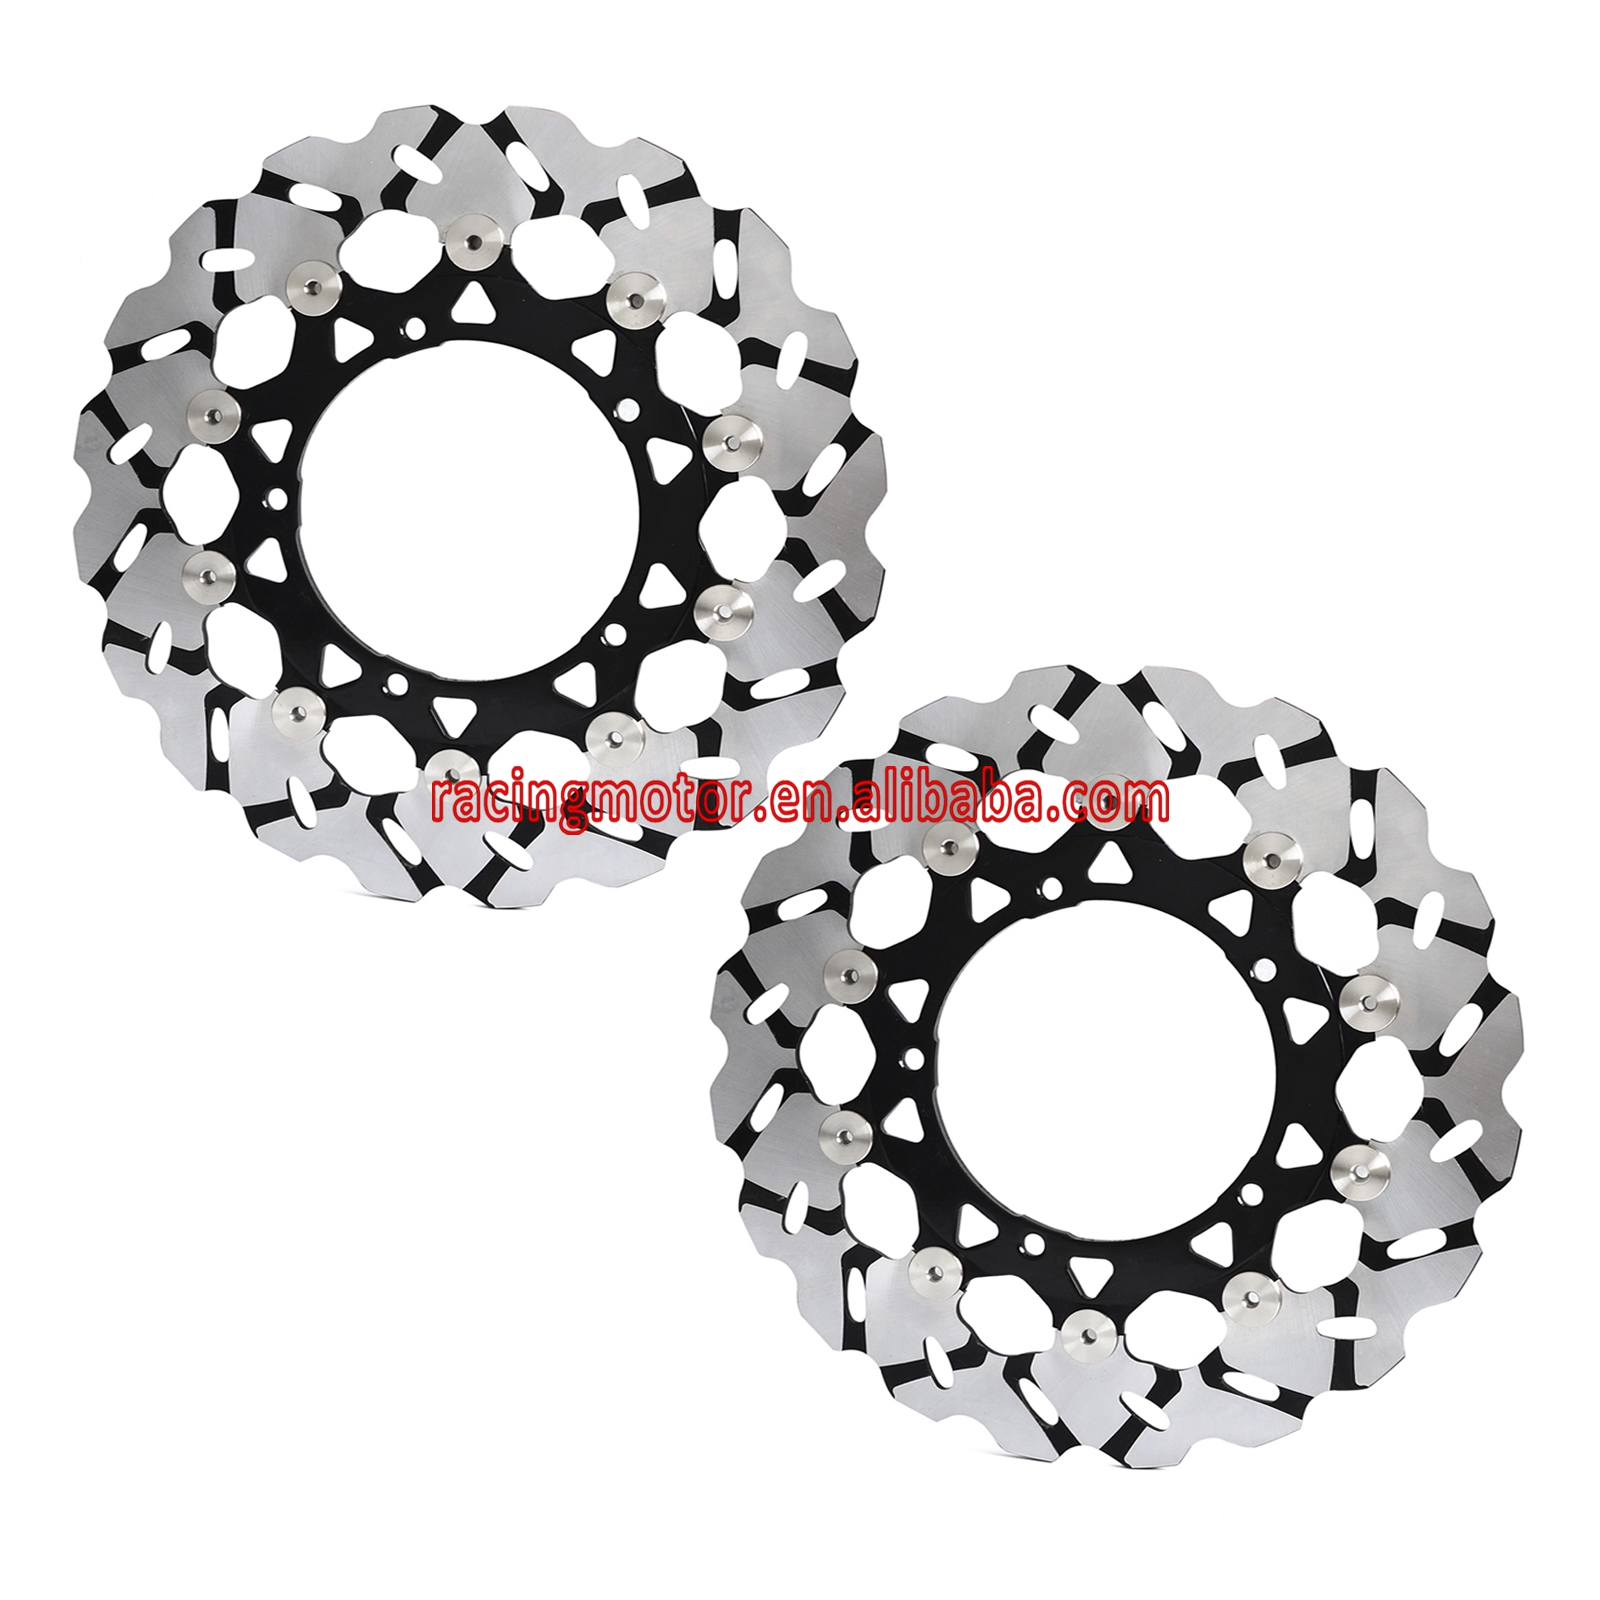 Motorcycle Front Brake Disc Disk For Yamaha FZ1 2006-2014 FZ1000 Fazer ABS 2007-2012 YZFR1 YZF-R1 2004 2005 2006 YZF R1 NEW aftermarket free shipping motorcycle parts eliminator tidy tail for 2006 2007 2008 fz6 fazer 2007 2008b lack